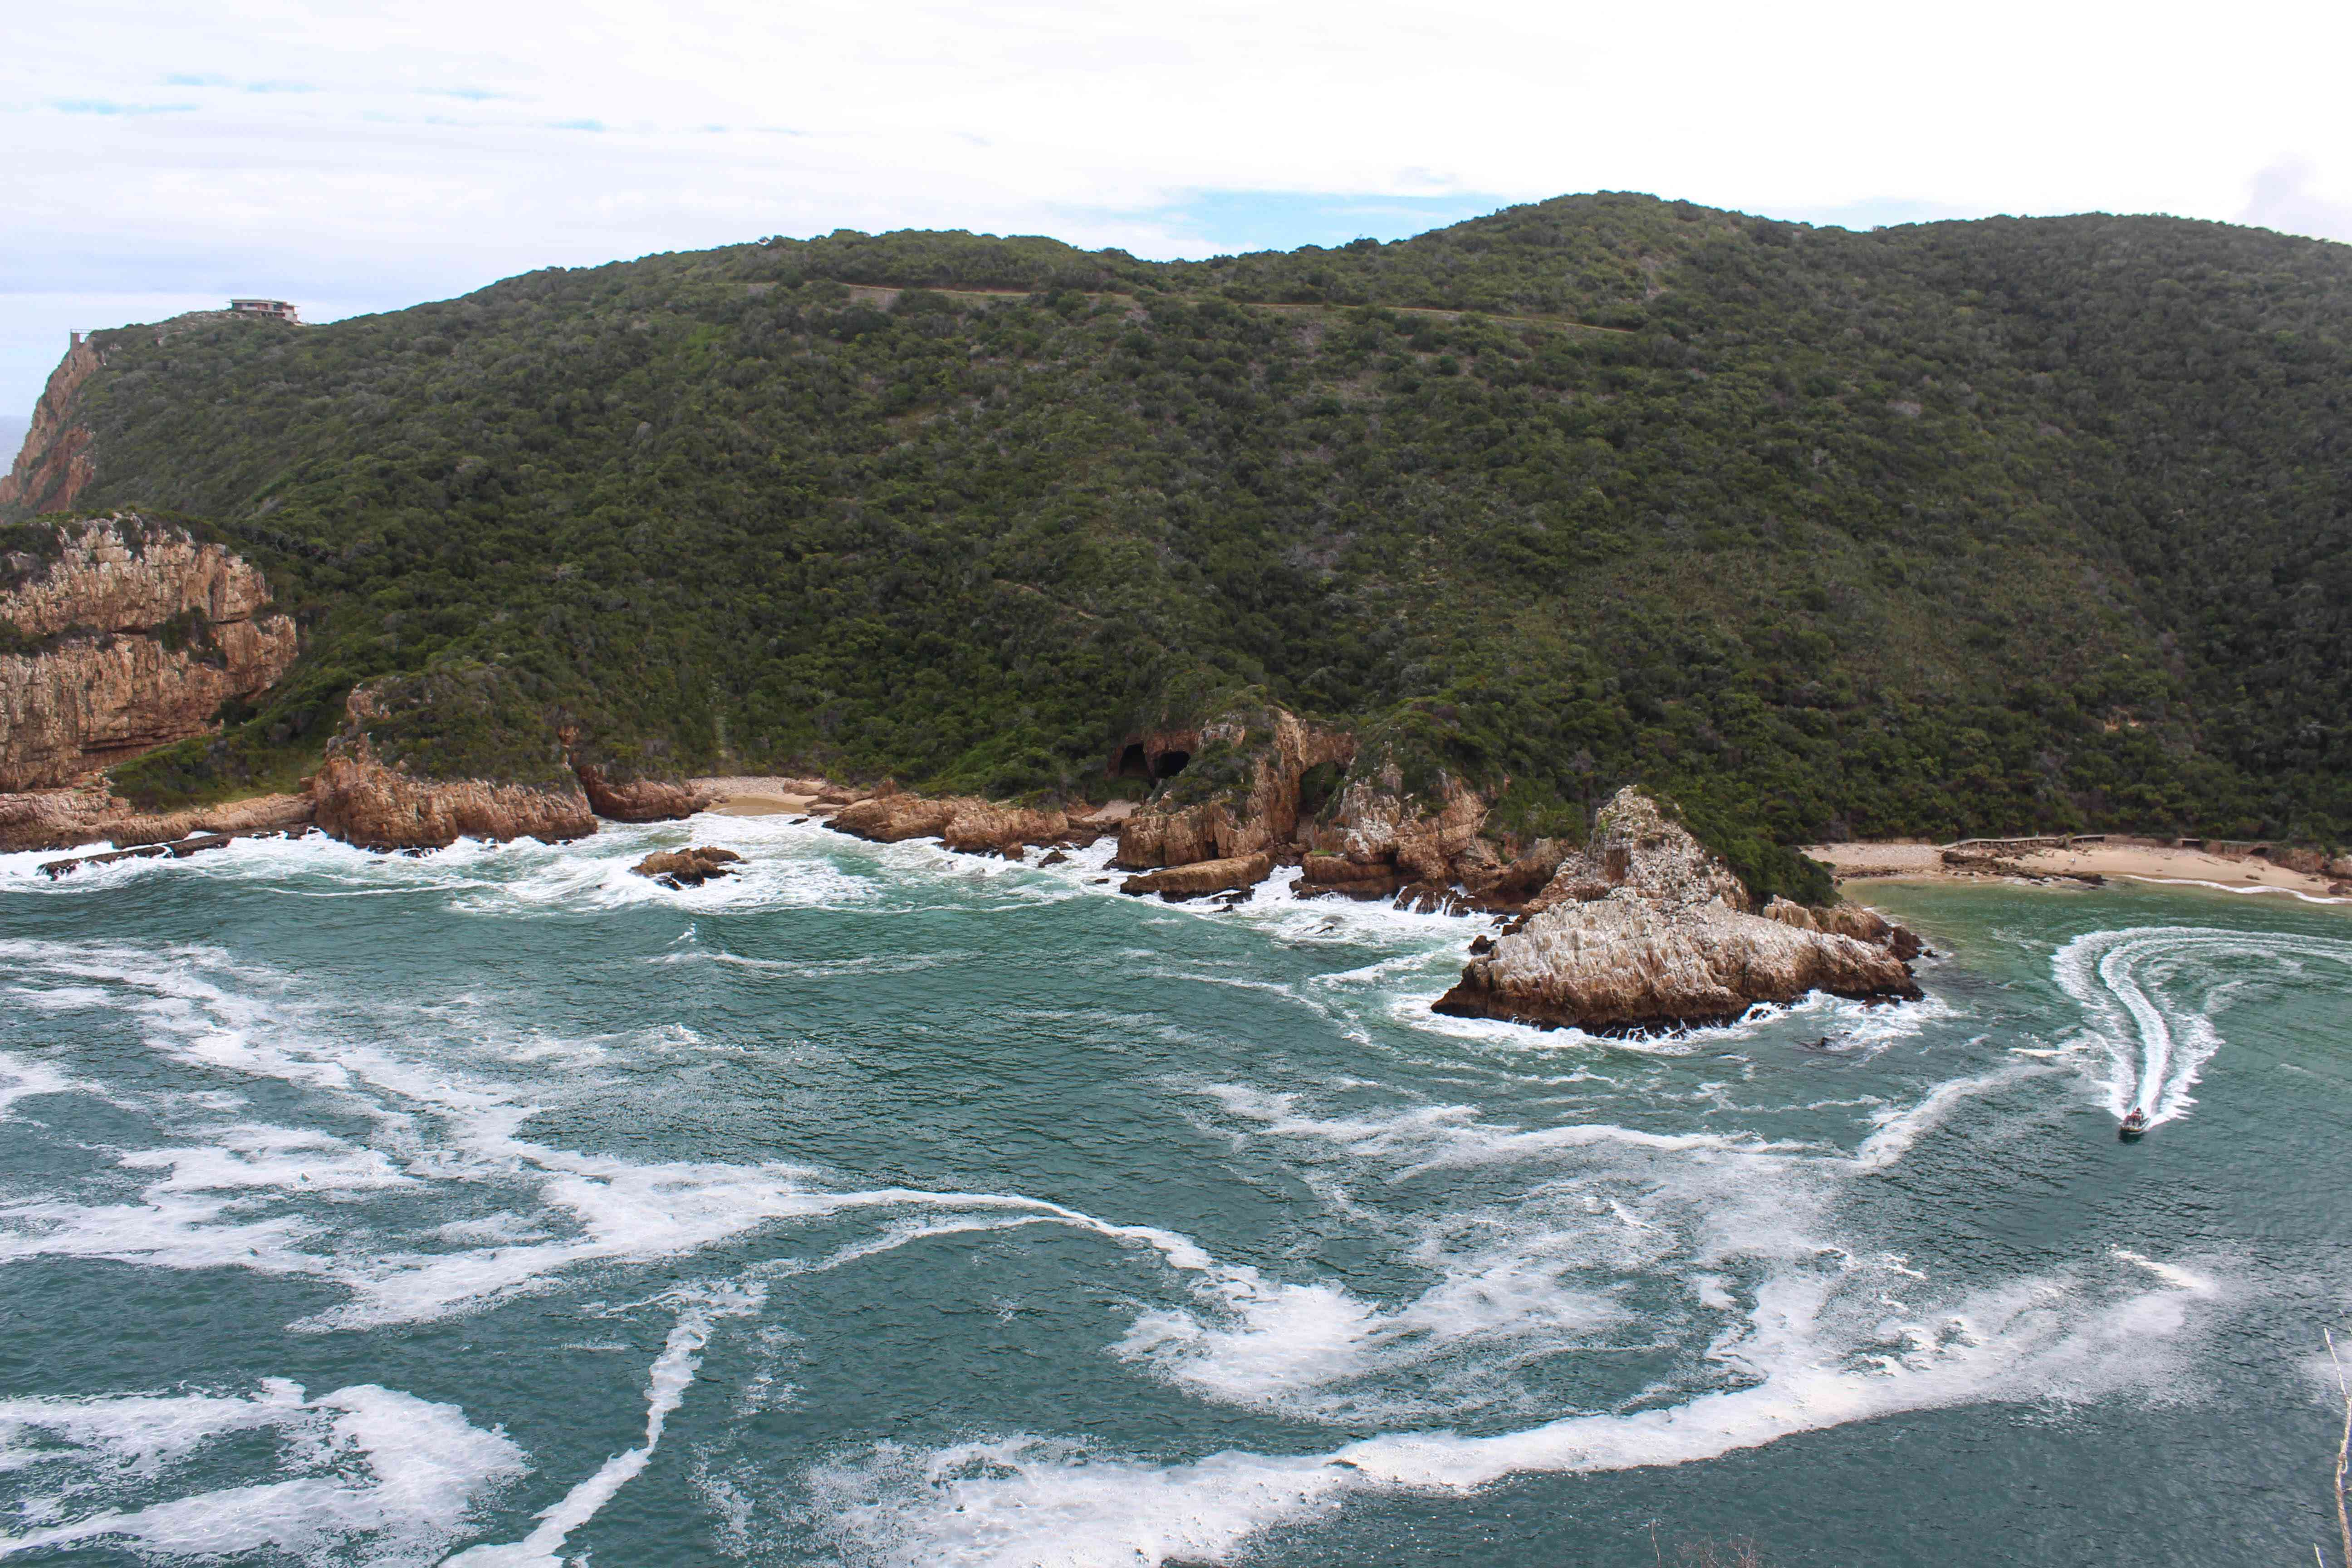 Aerial view of Knysna with waters swirling off the shore